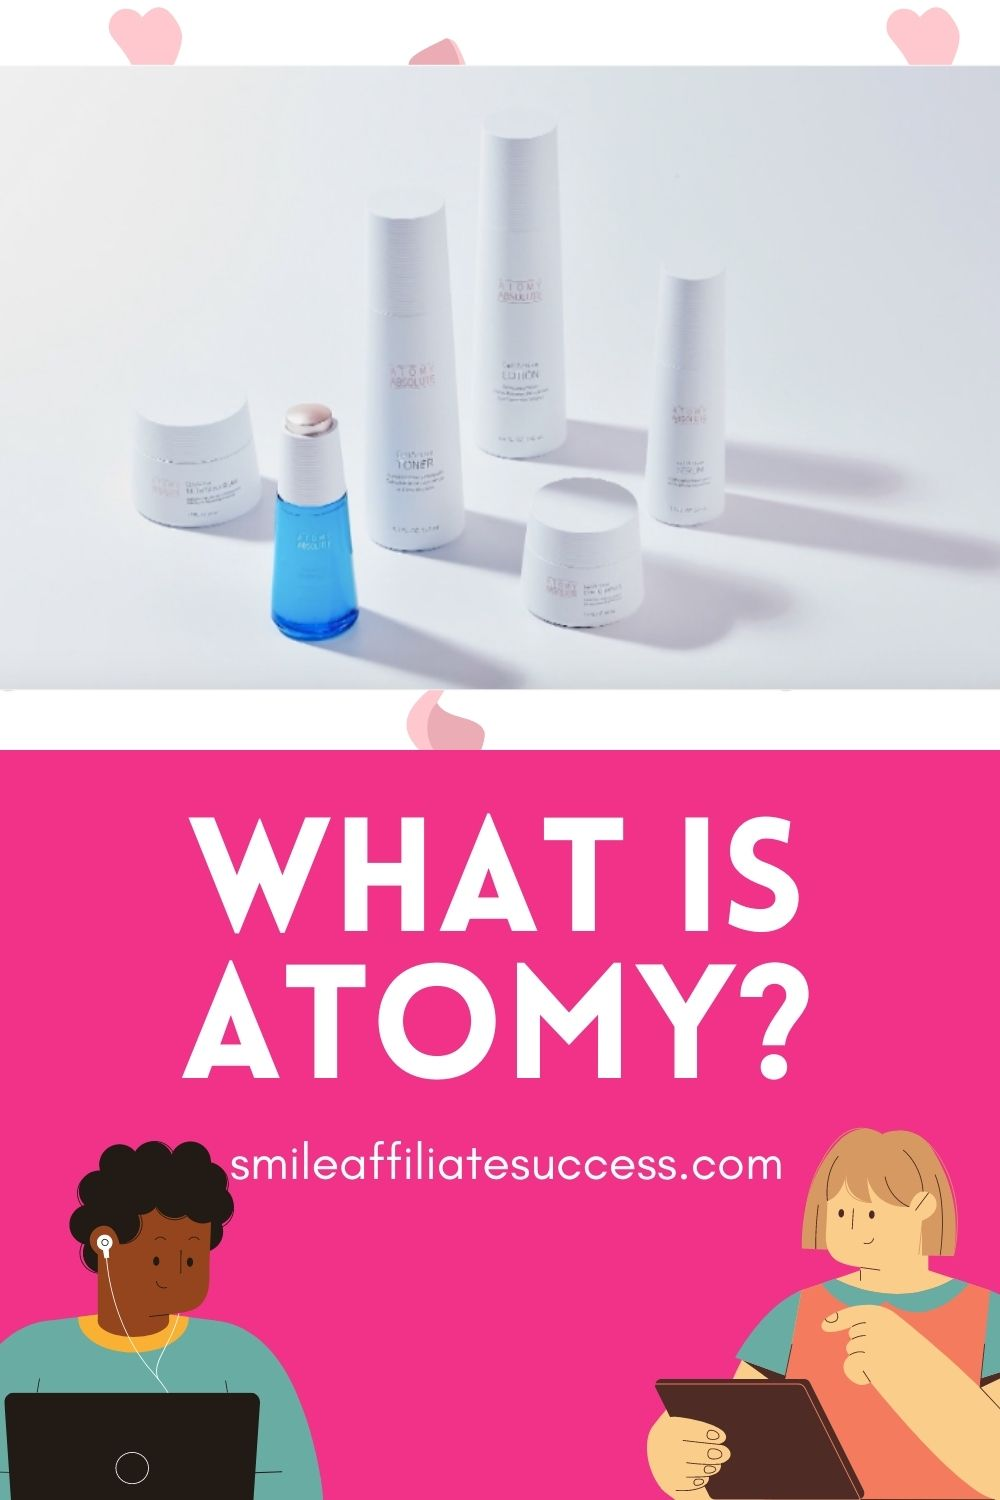 What Is Atomy?